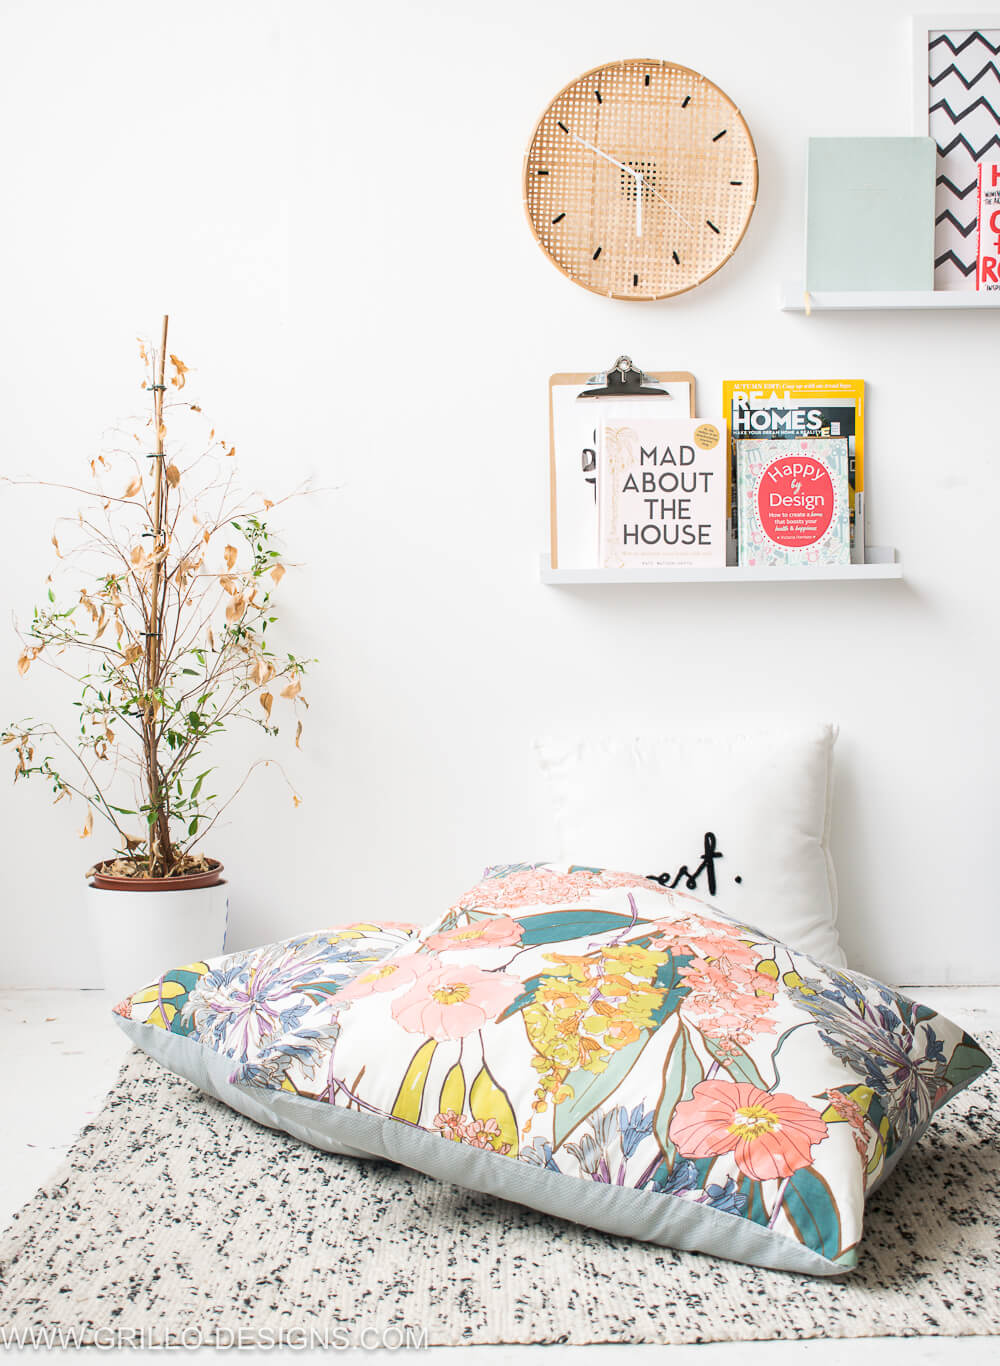 DIY No Sew Large Floor Cushions